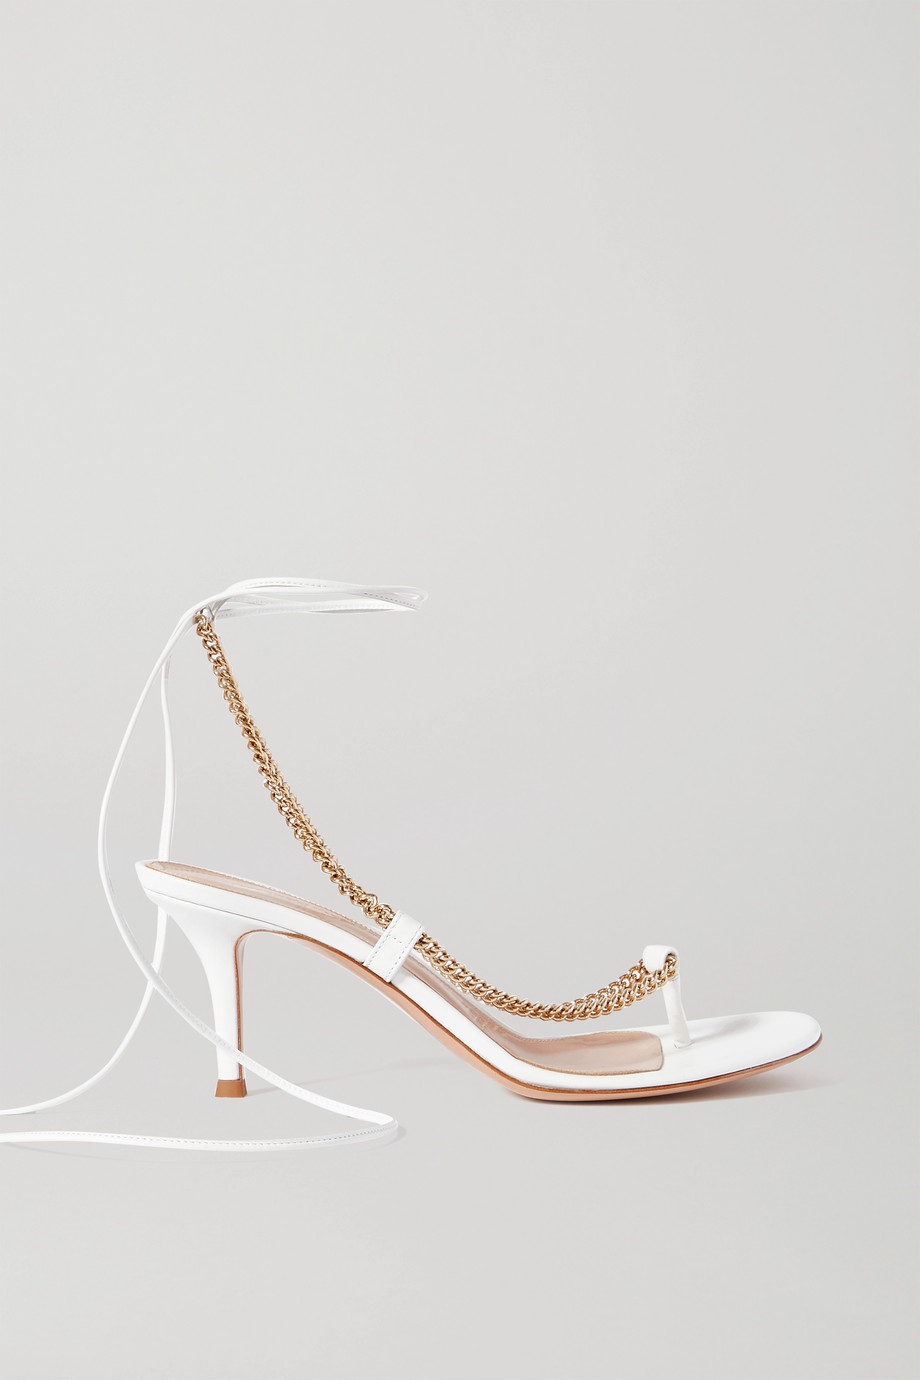 Gianvito Rossi 70 chain-embellished leather sandals